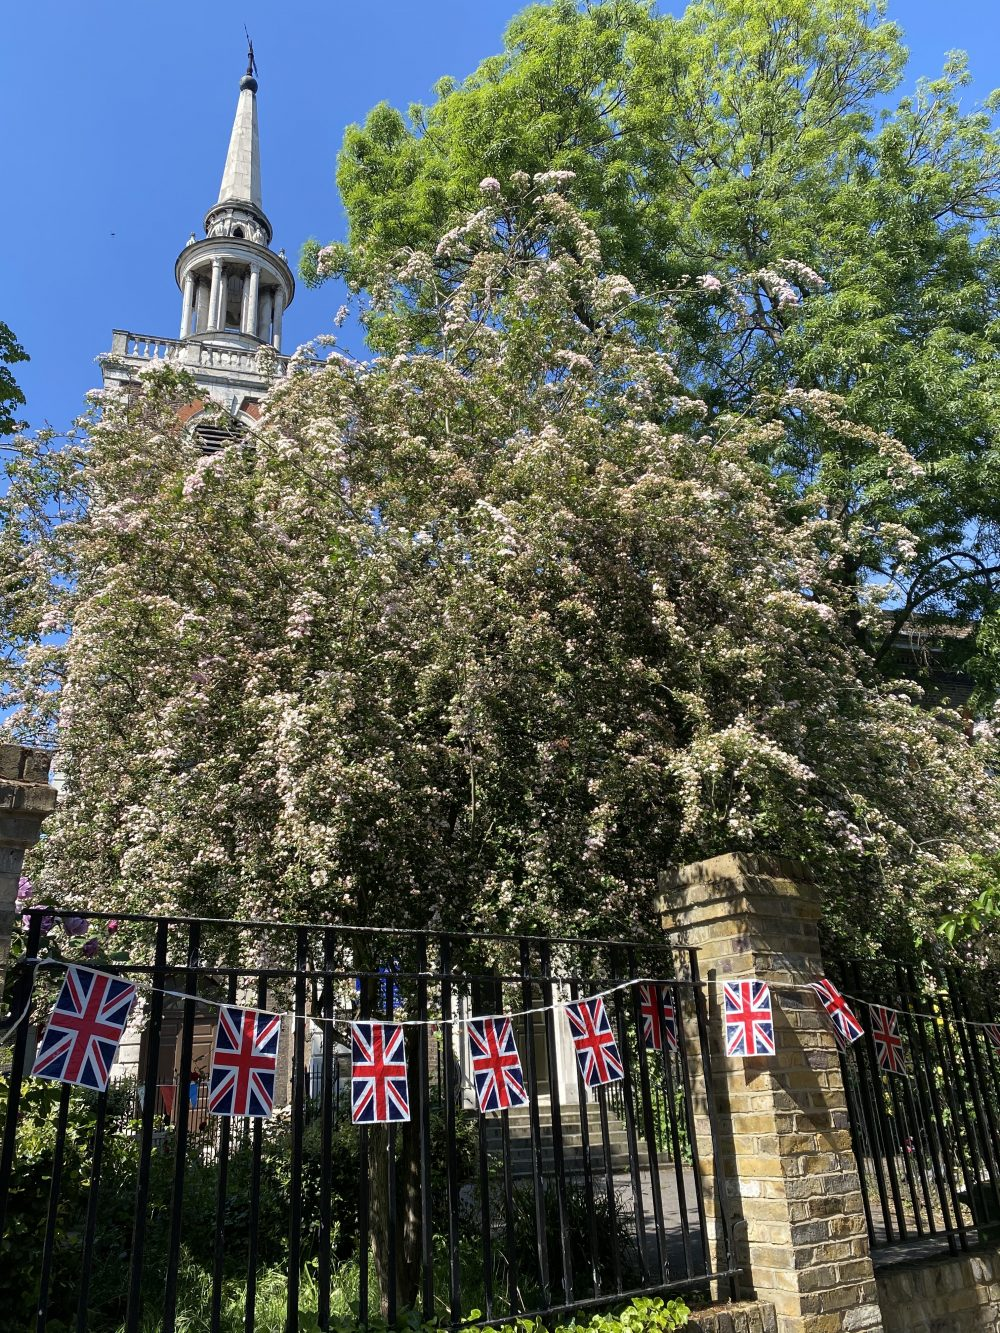 St Mary's Church in Rotherhithe